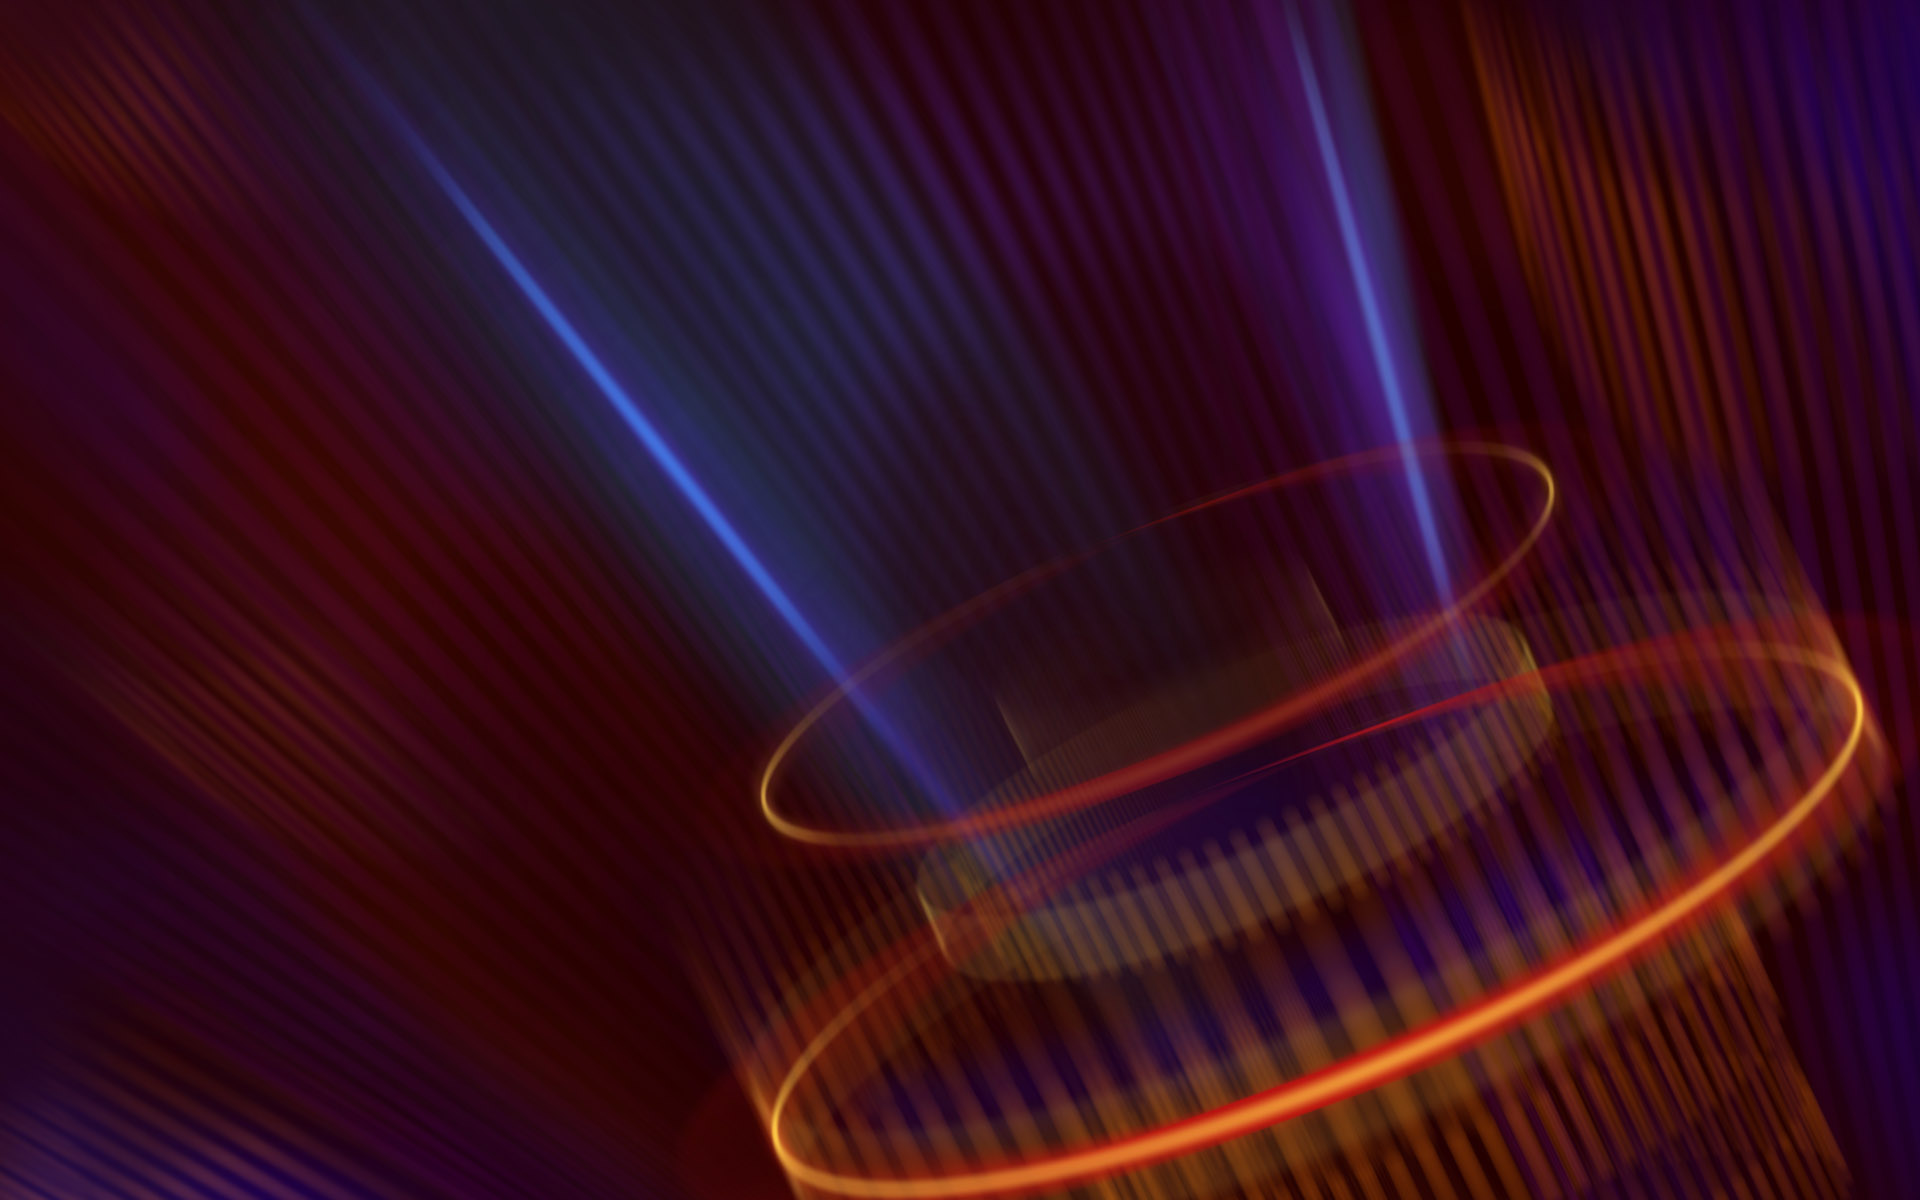 Hologram Reflector wallpapers and images - wallpapers ...